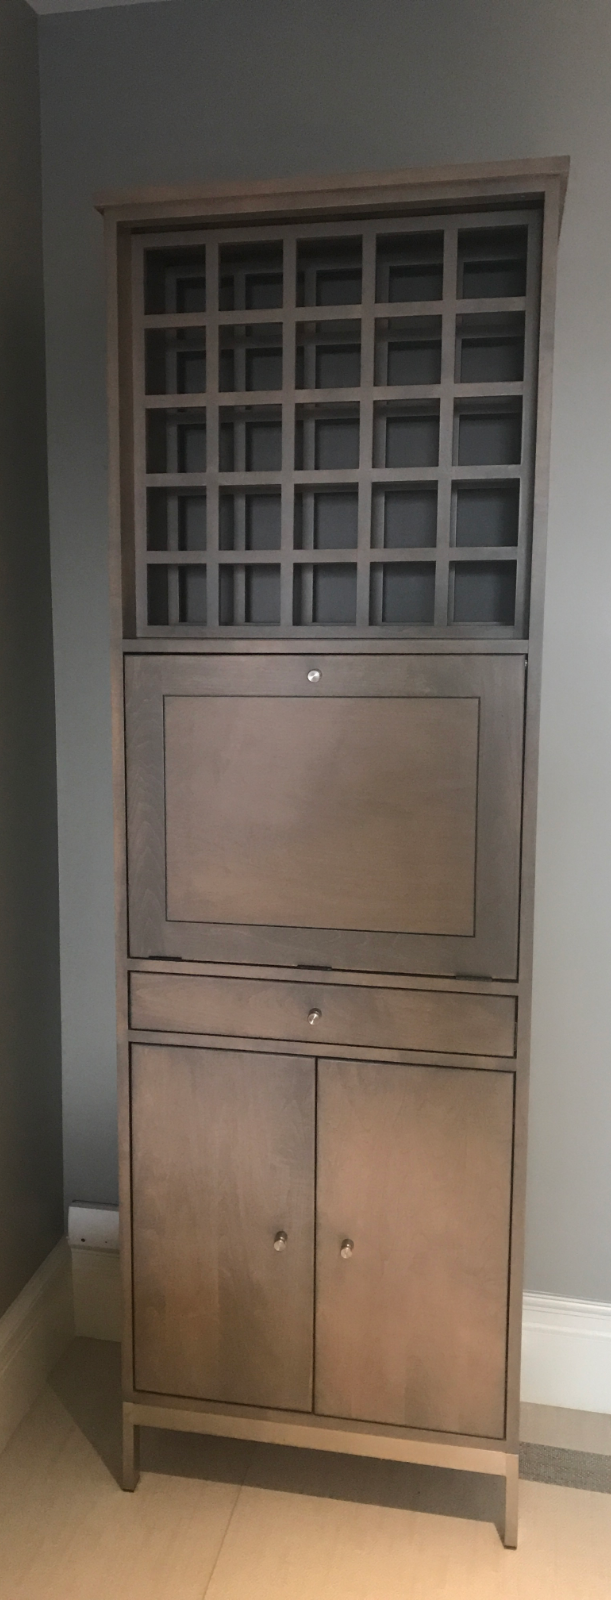 Wood Room U0026 Board Contemporary Bar Cabinet For Sale   Image 7 ...